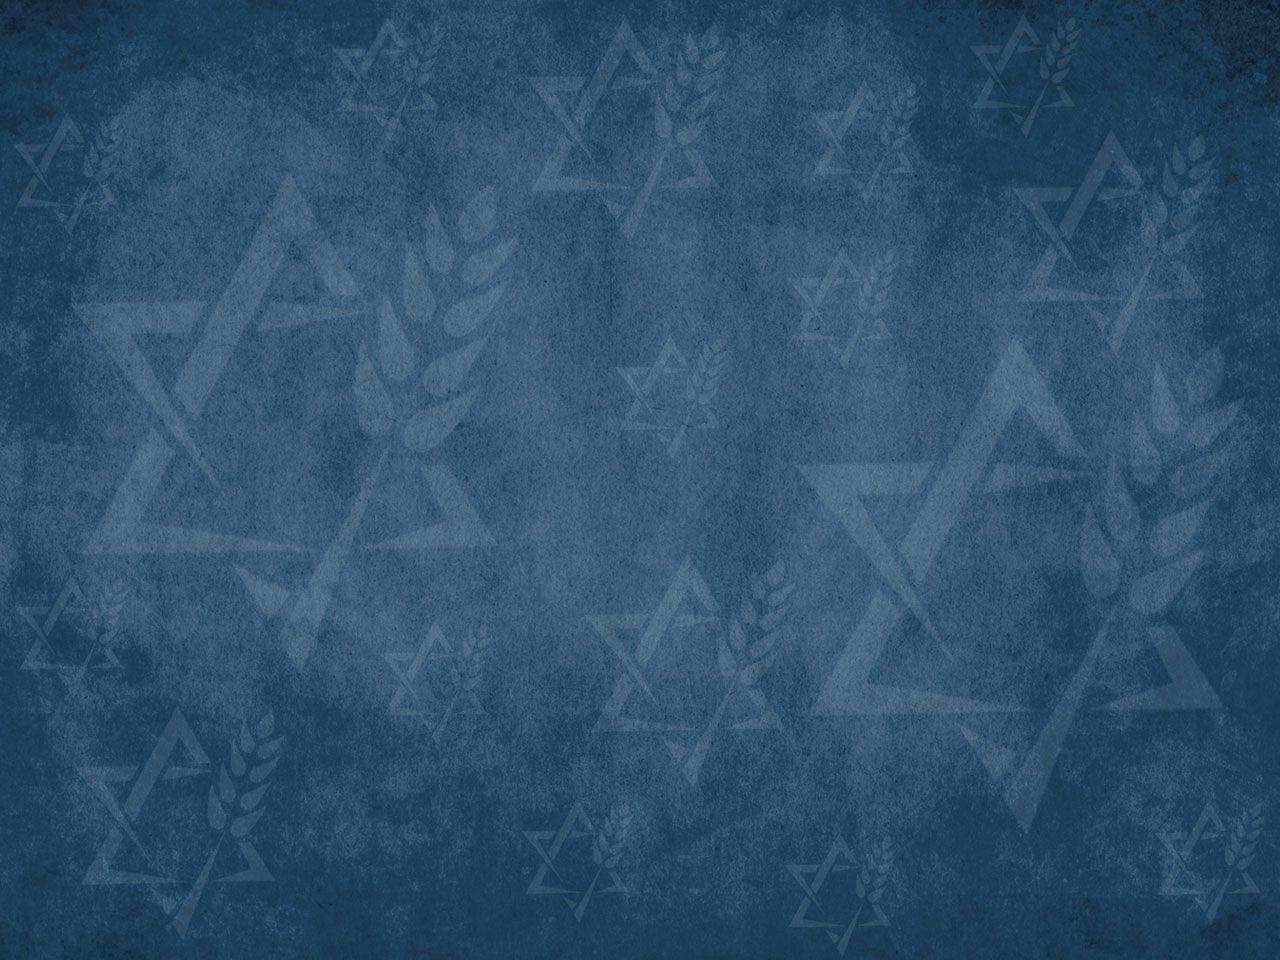 53 stocks at Jewish Wallpapers group